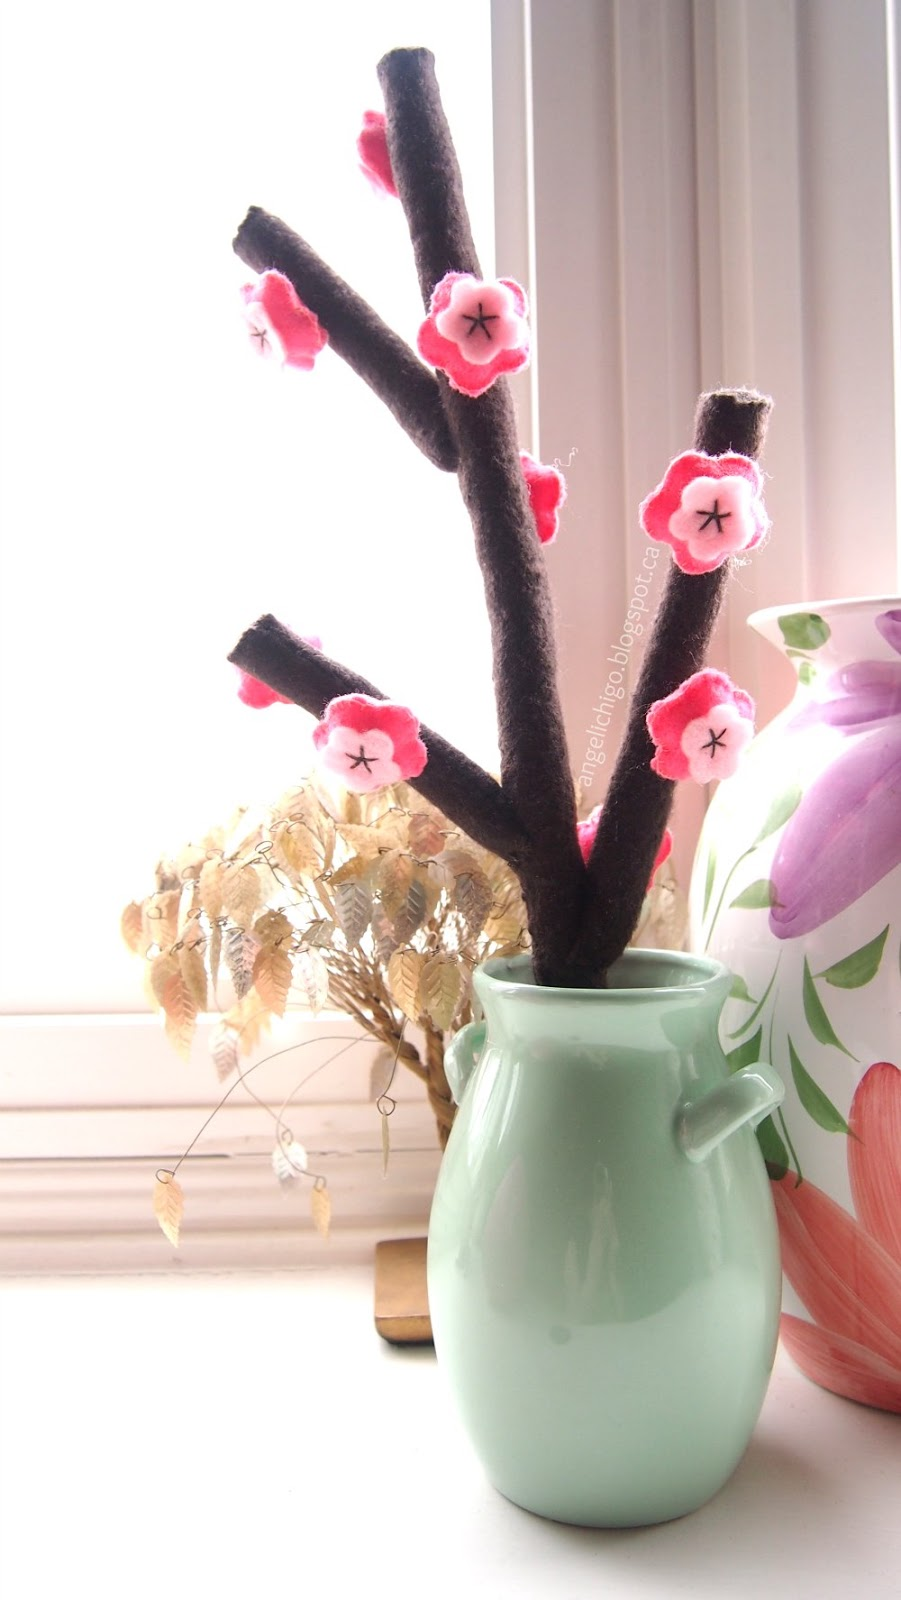 How to celebrate Chinese New Year - Make Your Own Cherry Blossoms